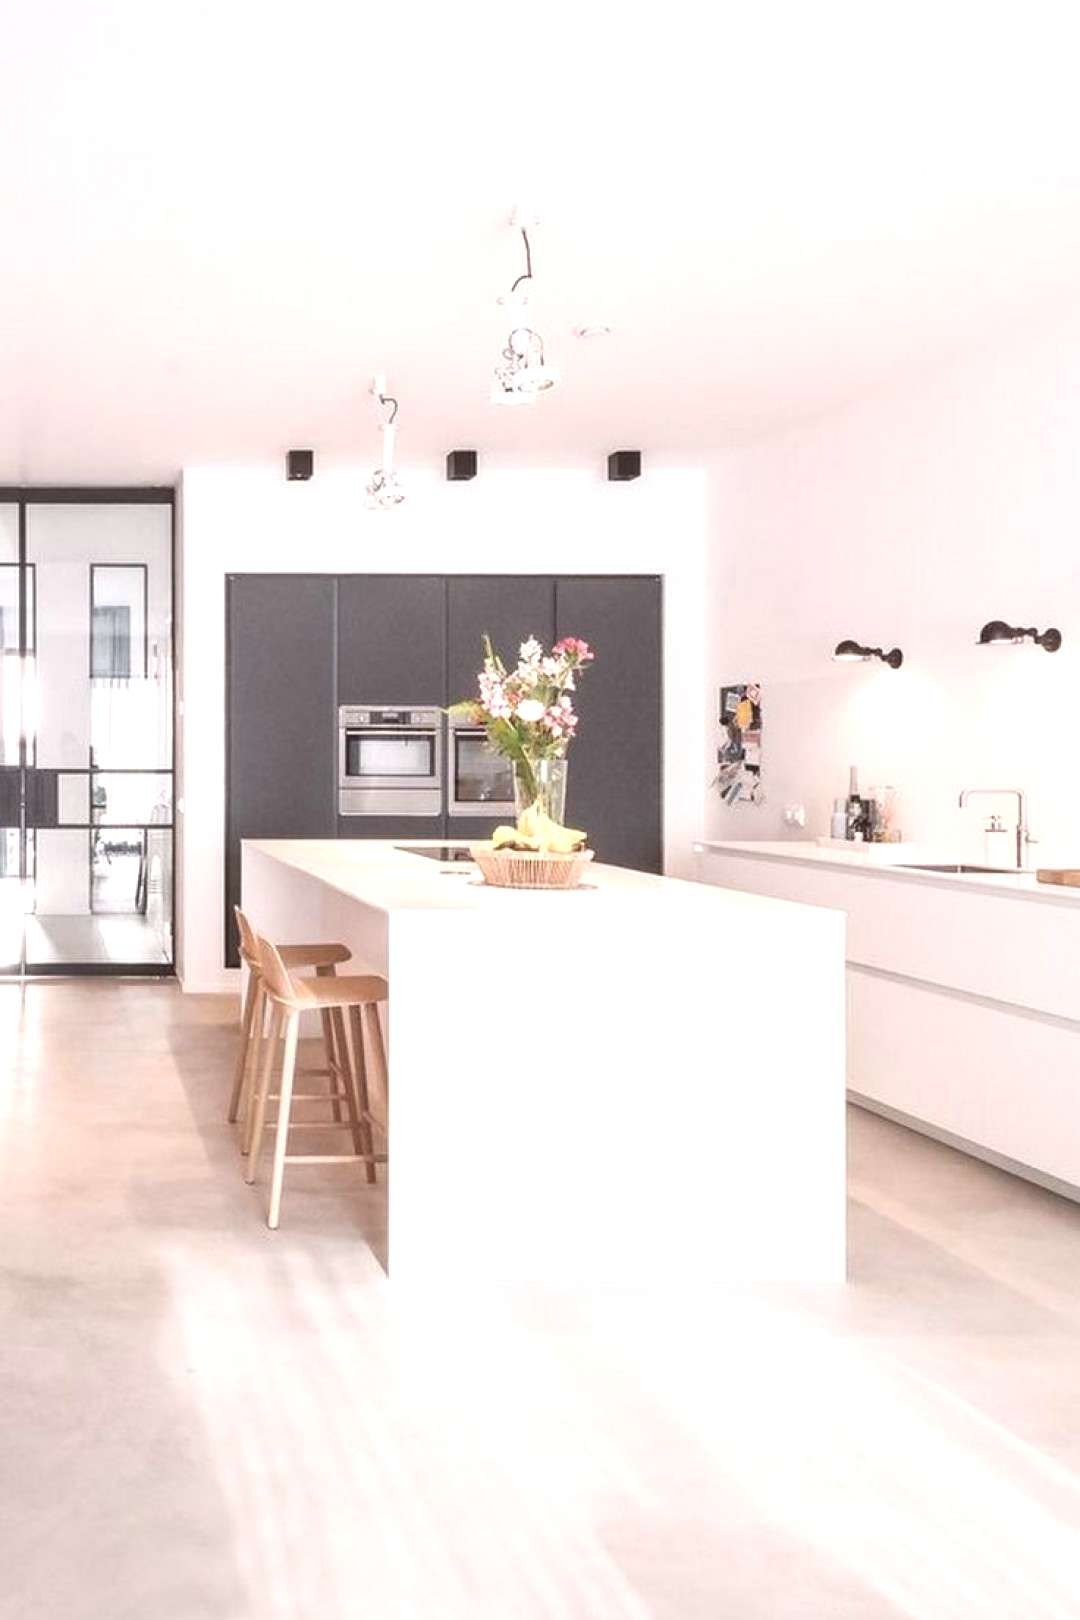 Modern Minimalist Kitchens That Will Make You Fall in Love -